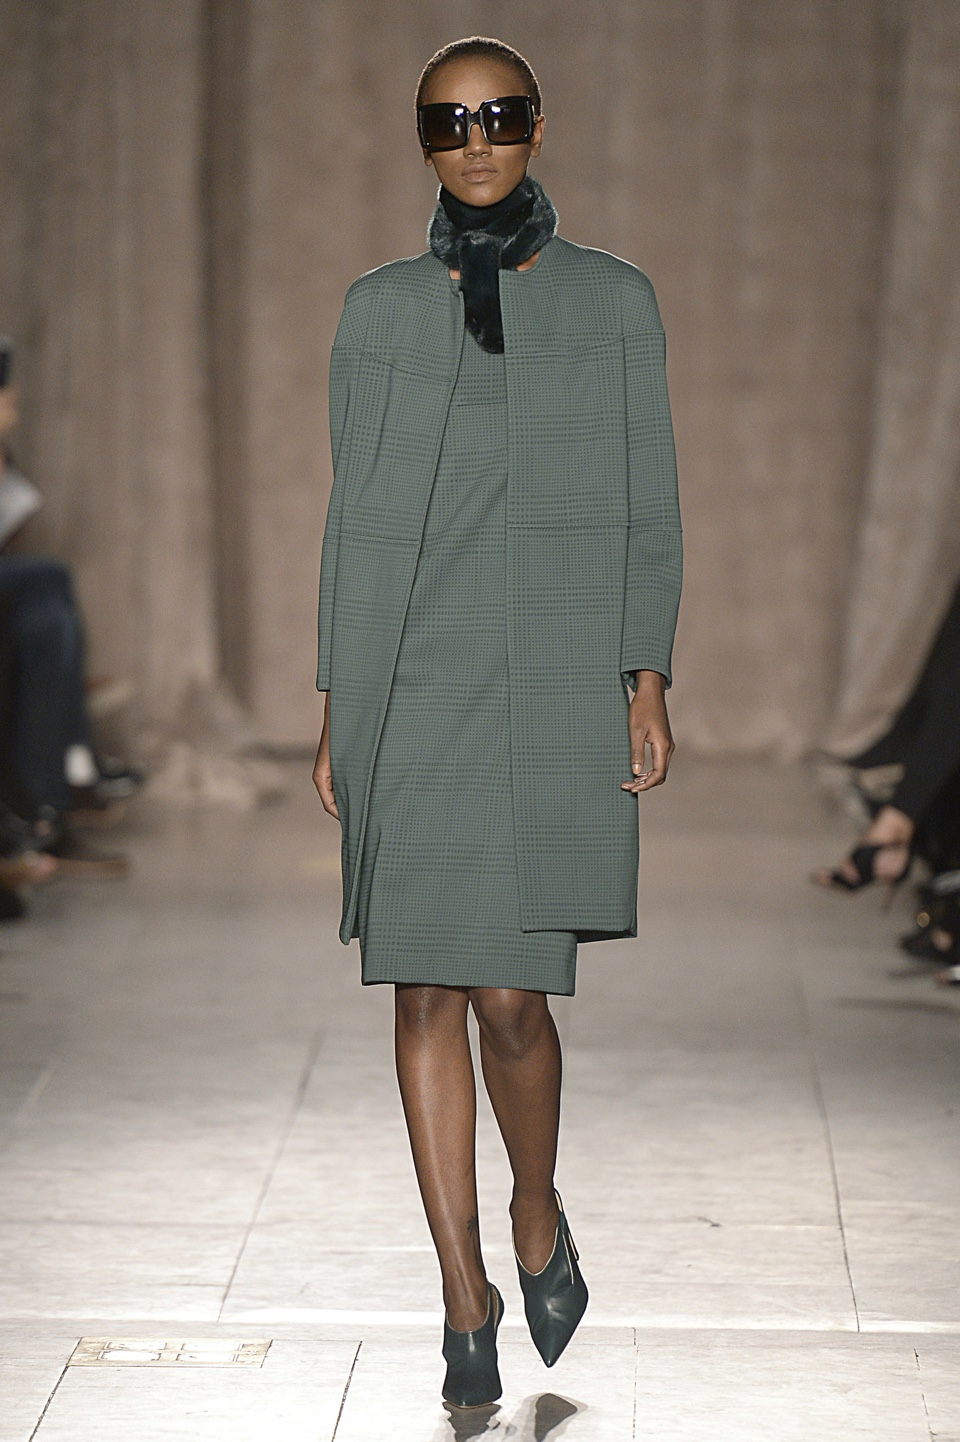 zac-posen-runway-rtw-fall-2015-new-york-fashion-week-1-3